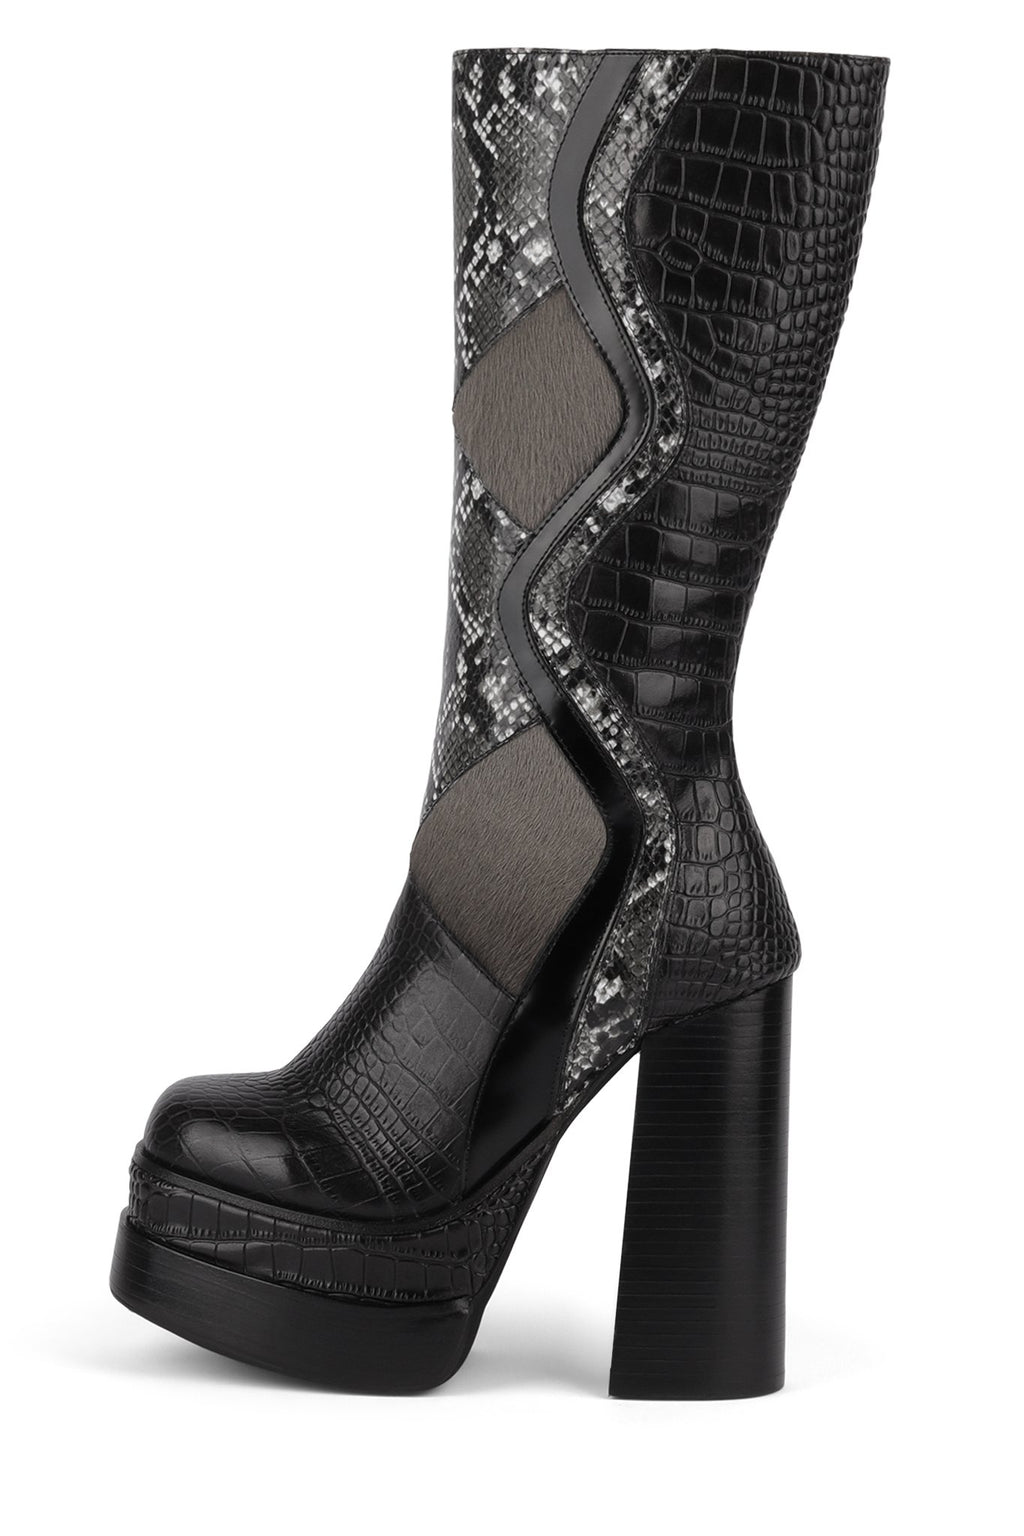 ROCKIN-IT Mid-Calf Boot HS Black Exotic Multi 6